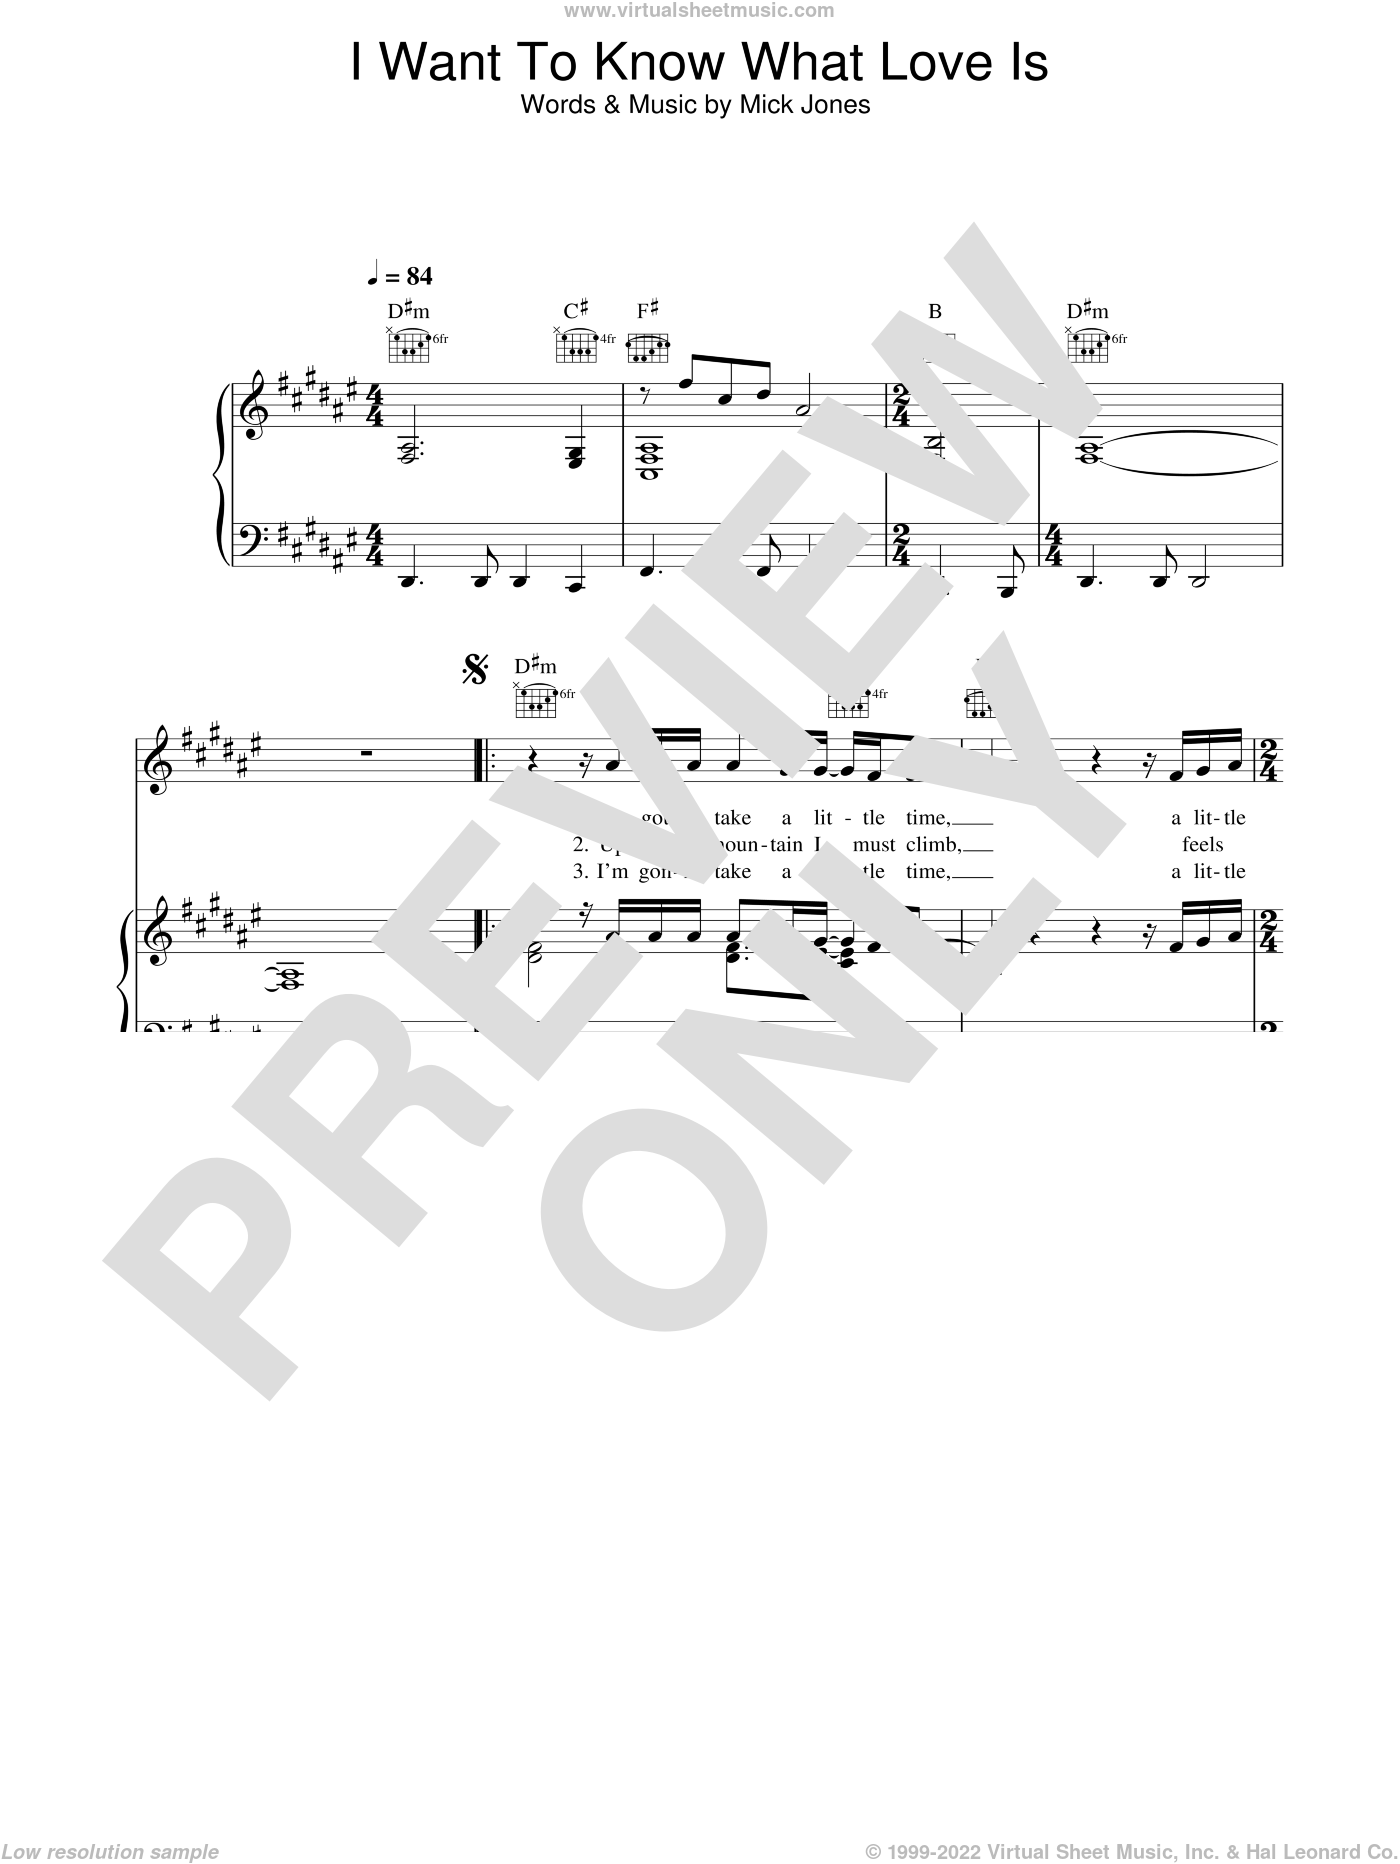 I Want To Know What Love Is sheet music for voice, piano or guitar by Foreigner and Mick Jones, intermediate skill level